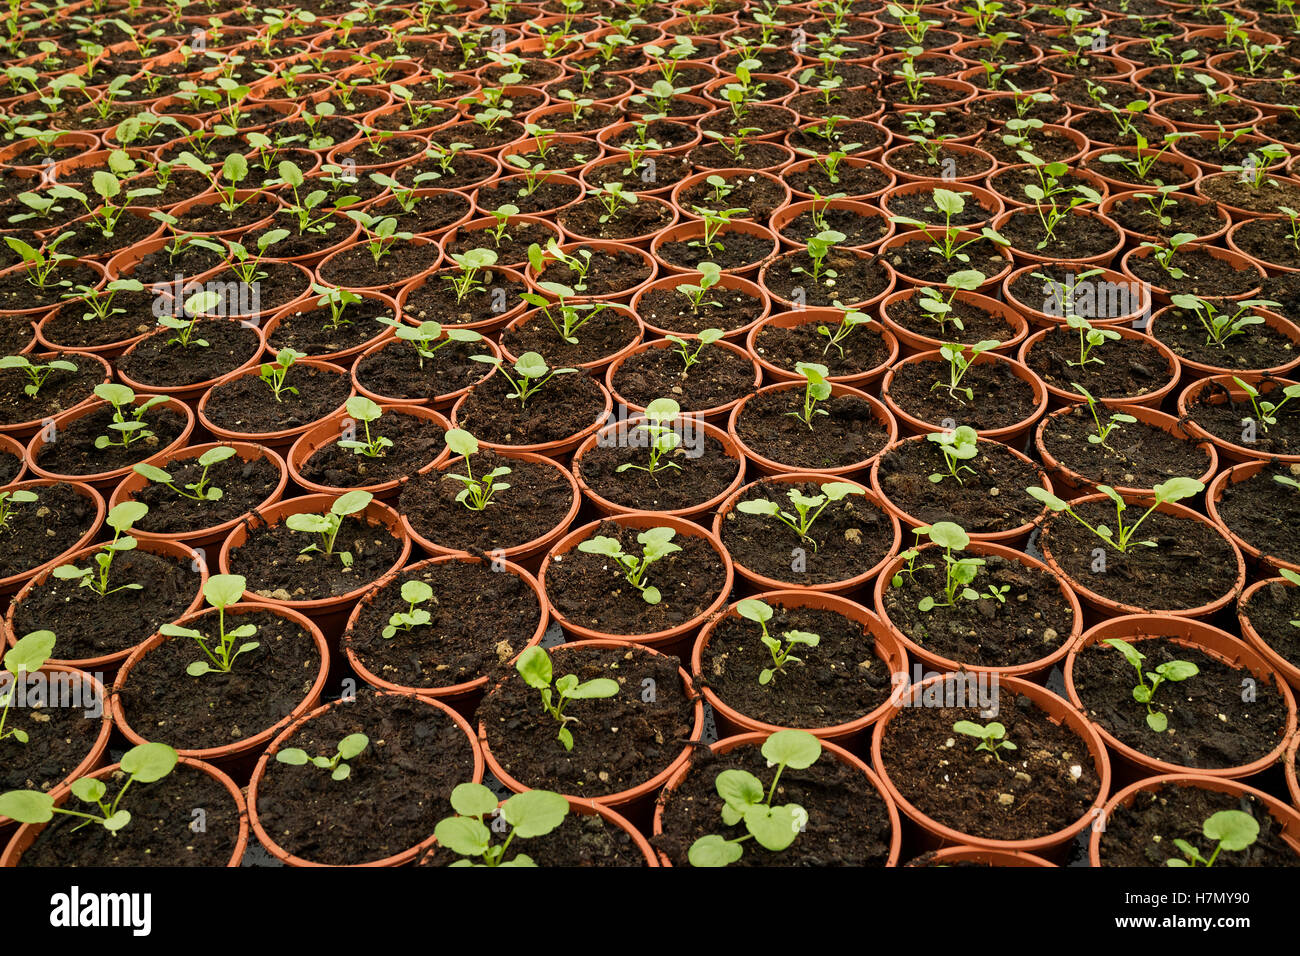 Plant nursery with germinating seeds - Stock Image